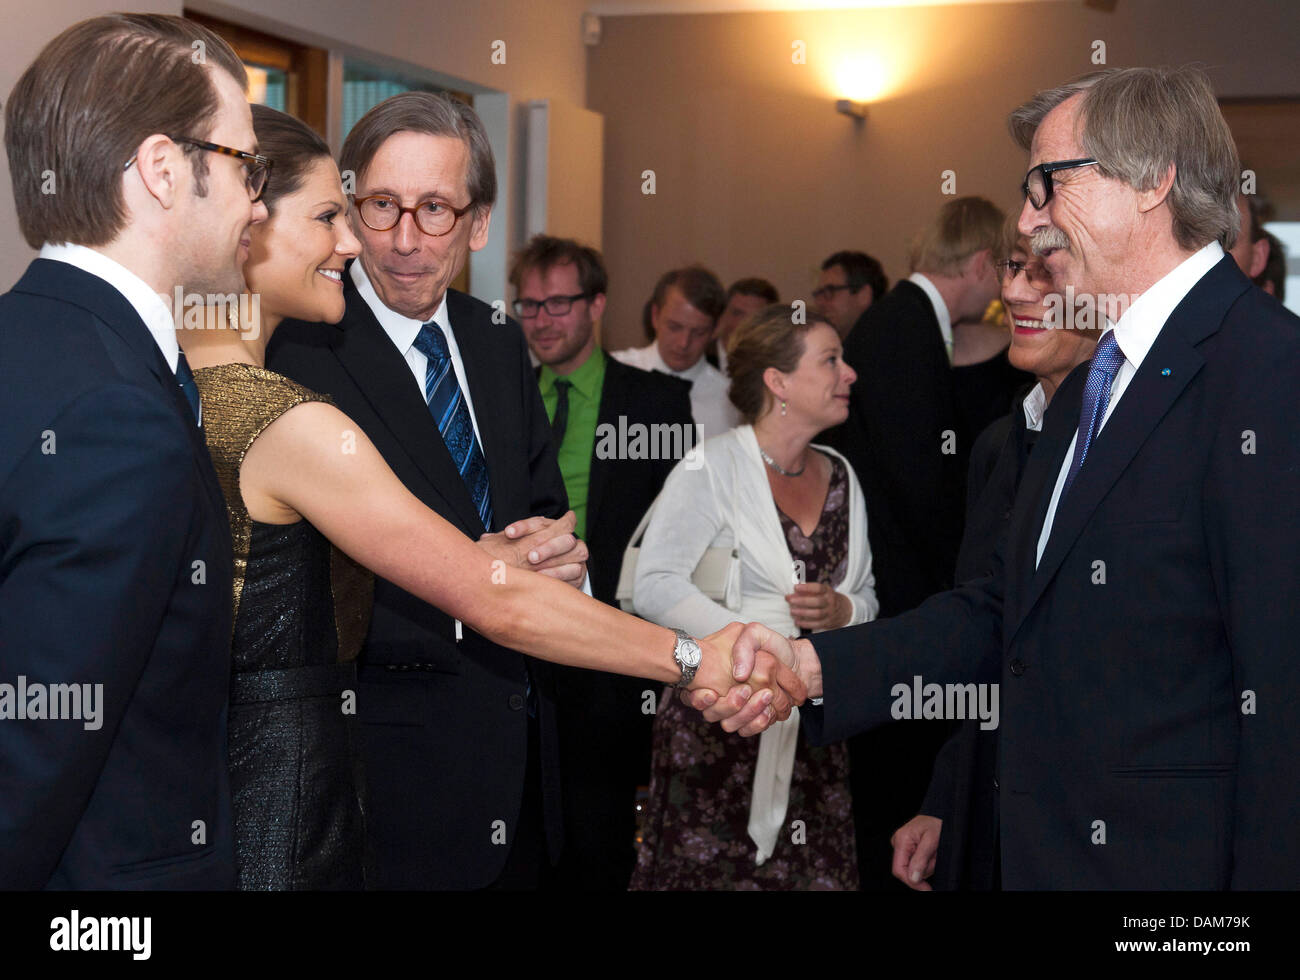 Swedish Princess Victoria (2-l) and her husband Daniel (l) stand next to the Swedish embassador in Germany, Staffan - Stock Image